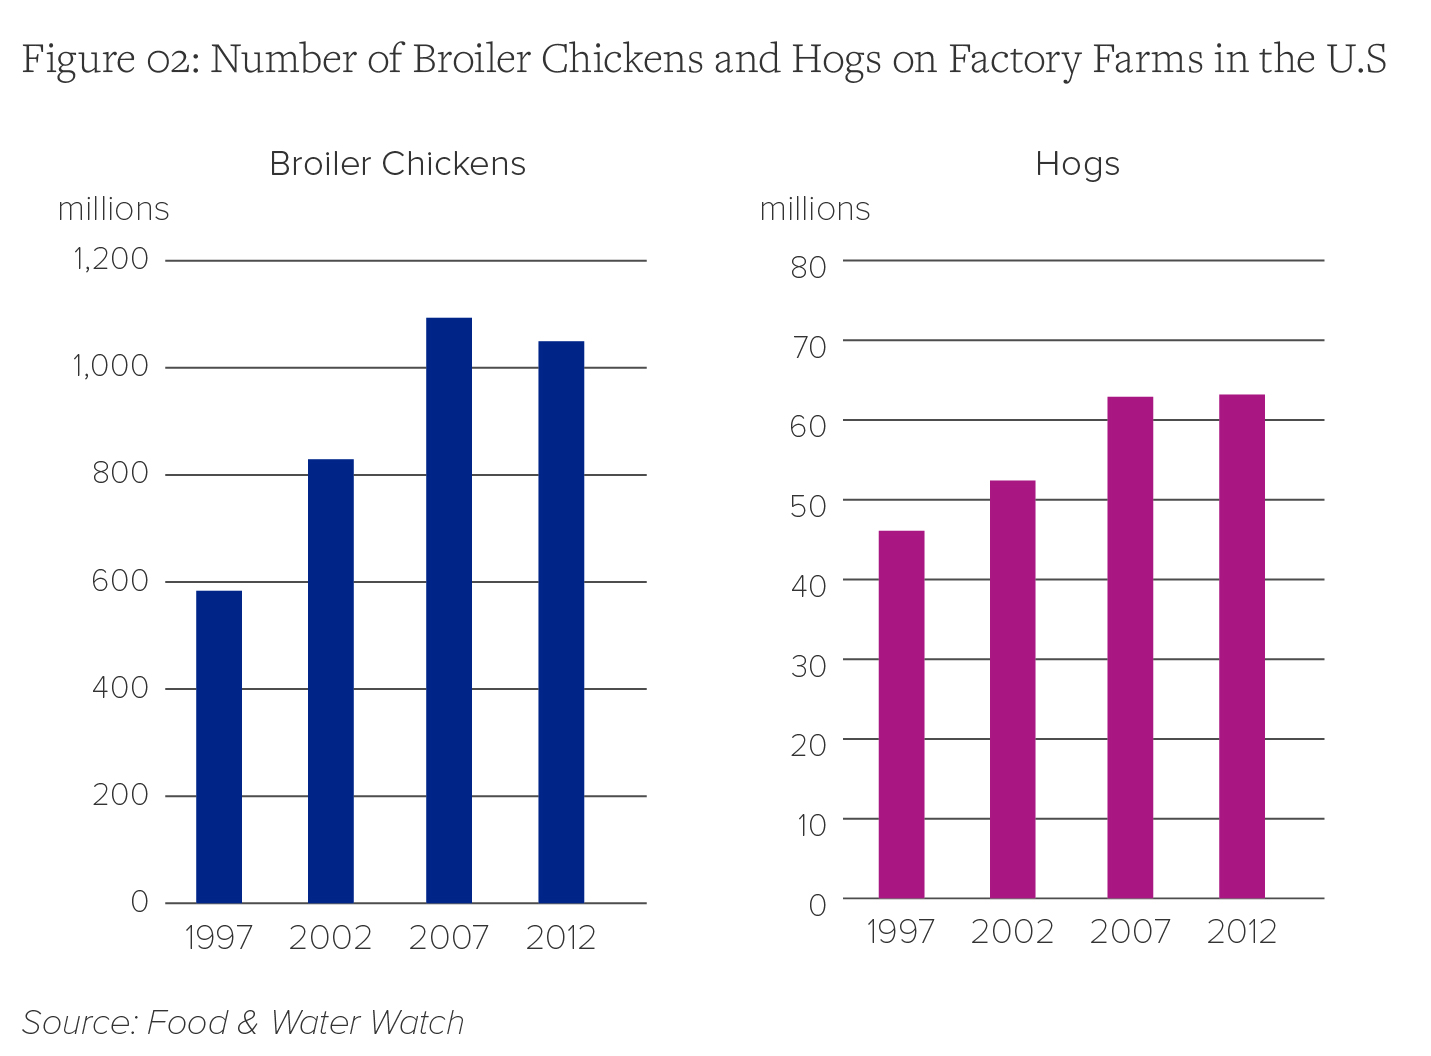 Number of Broiler Chickens and Hogs on Factory Farms in the U.S